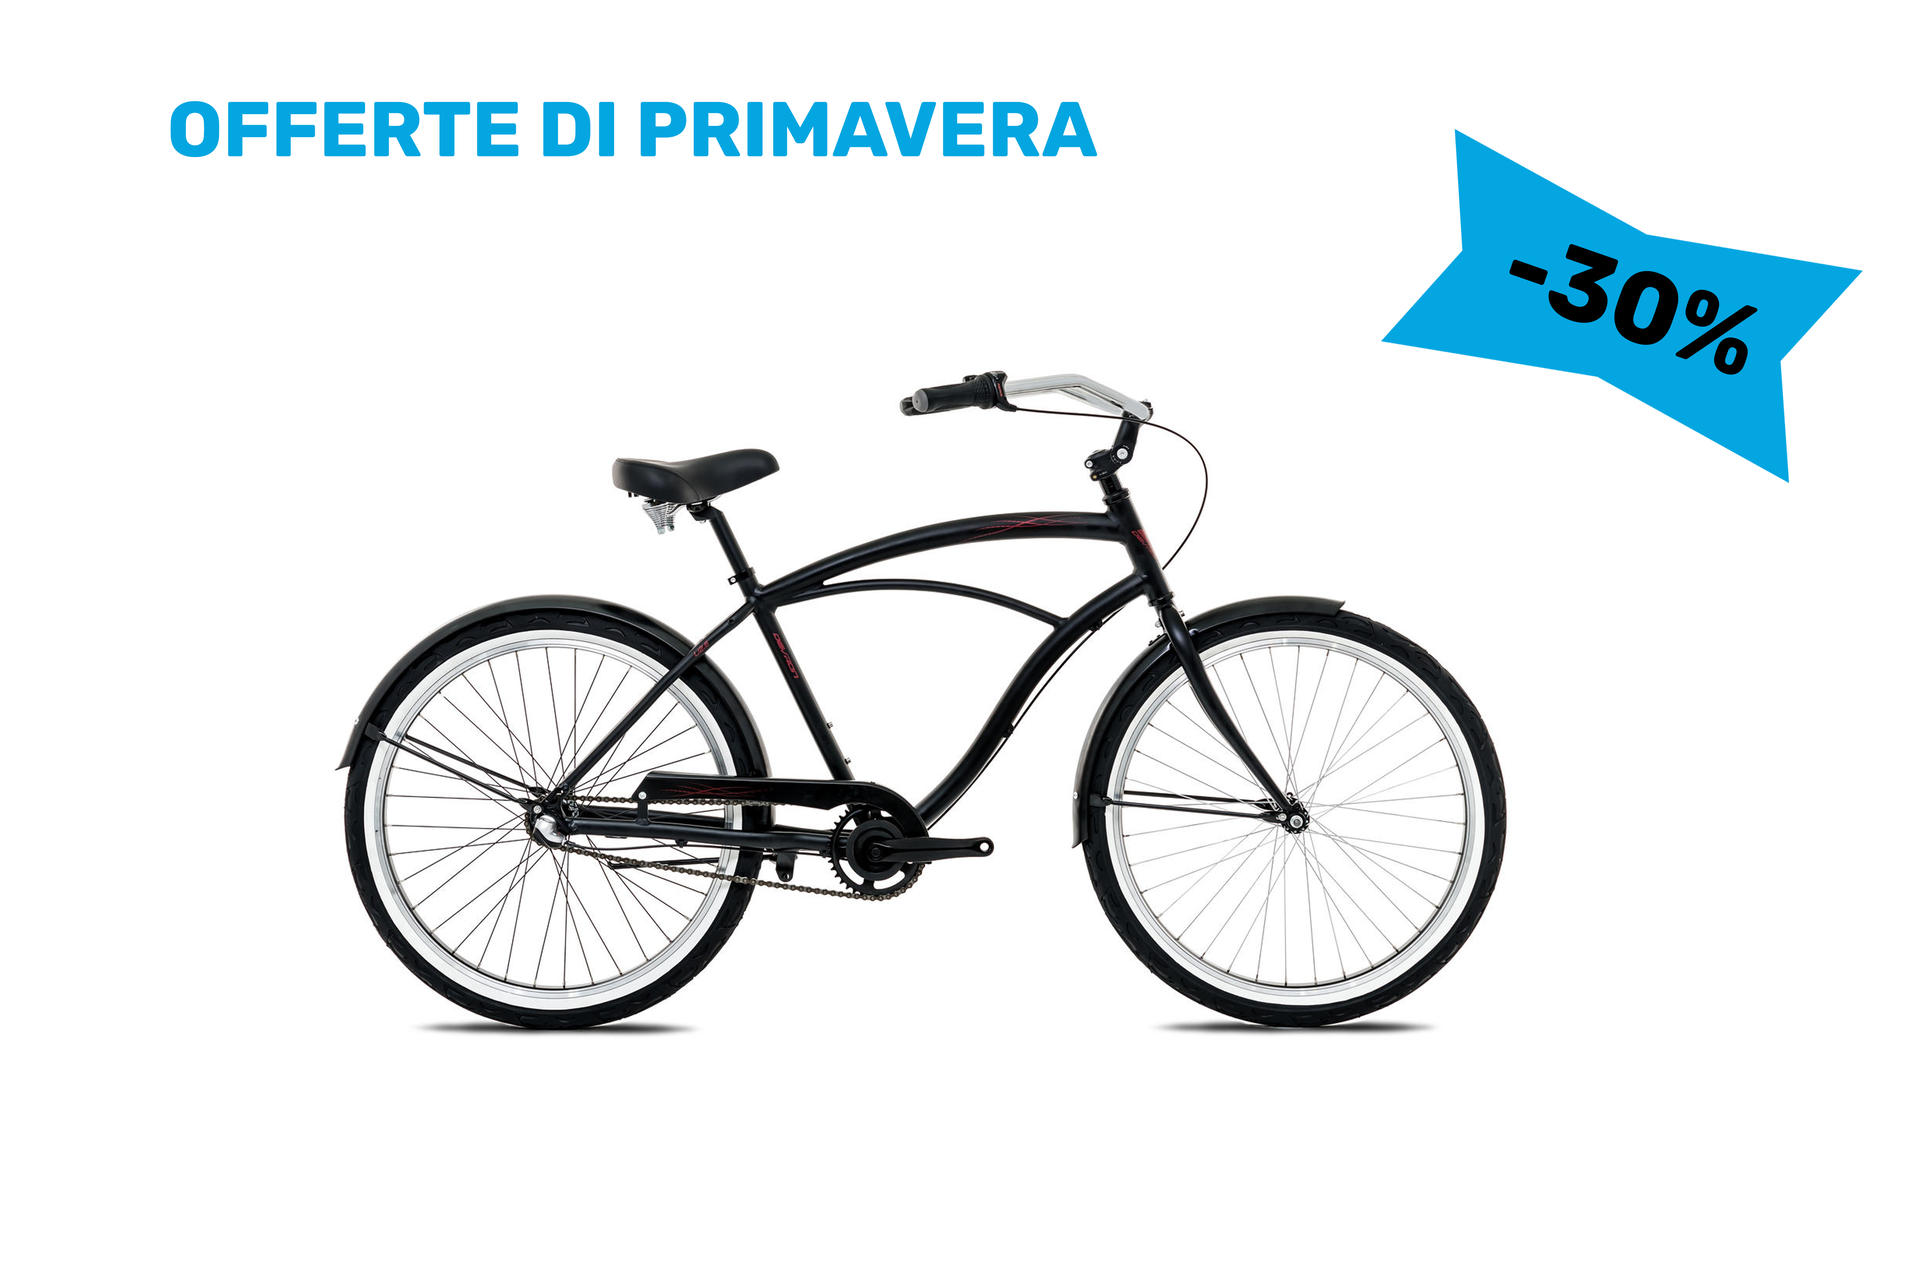 Biciclette Cruiser da uomo Devron Man Cruz.L2.6 Satin Black 445 mm